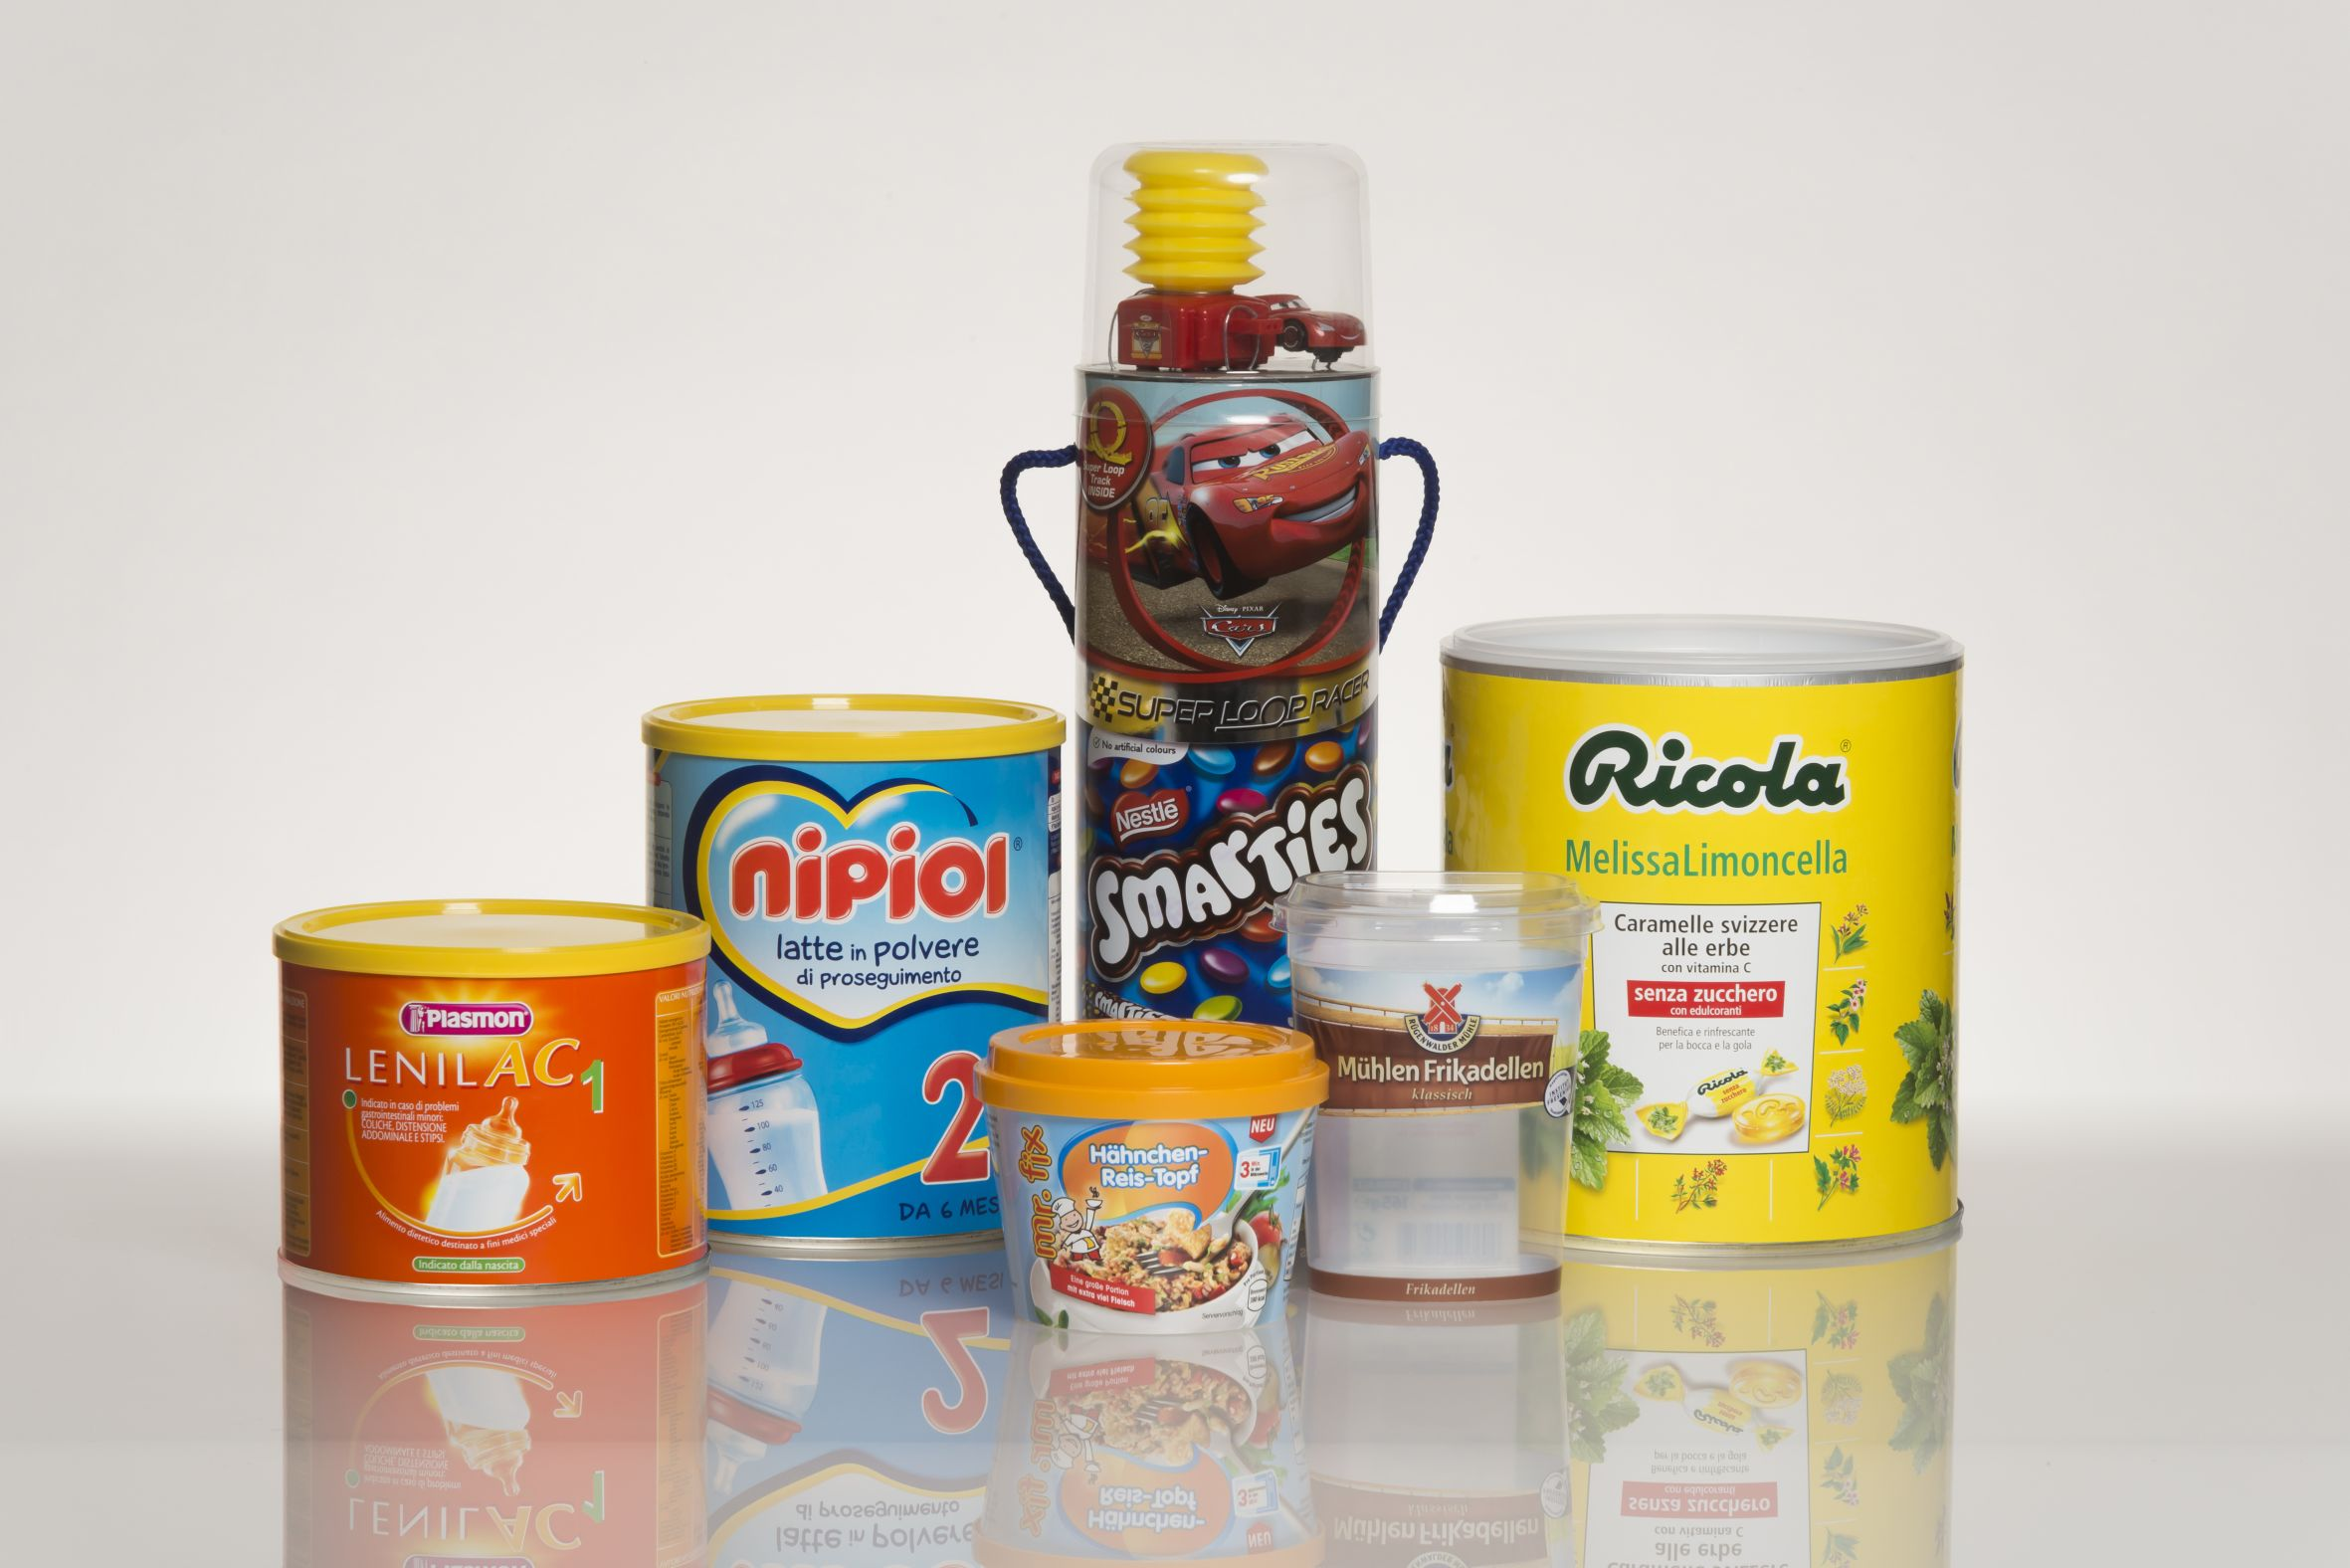 Weidenhammer presents versatile convenience packaging at FachPack 2013